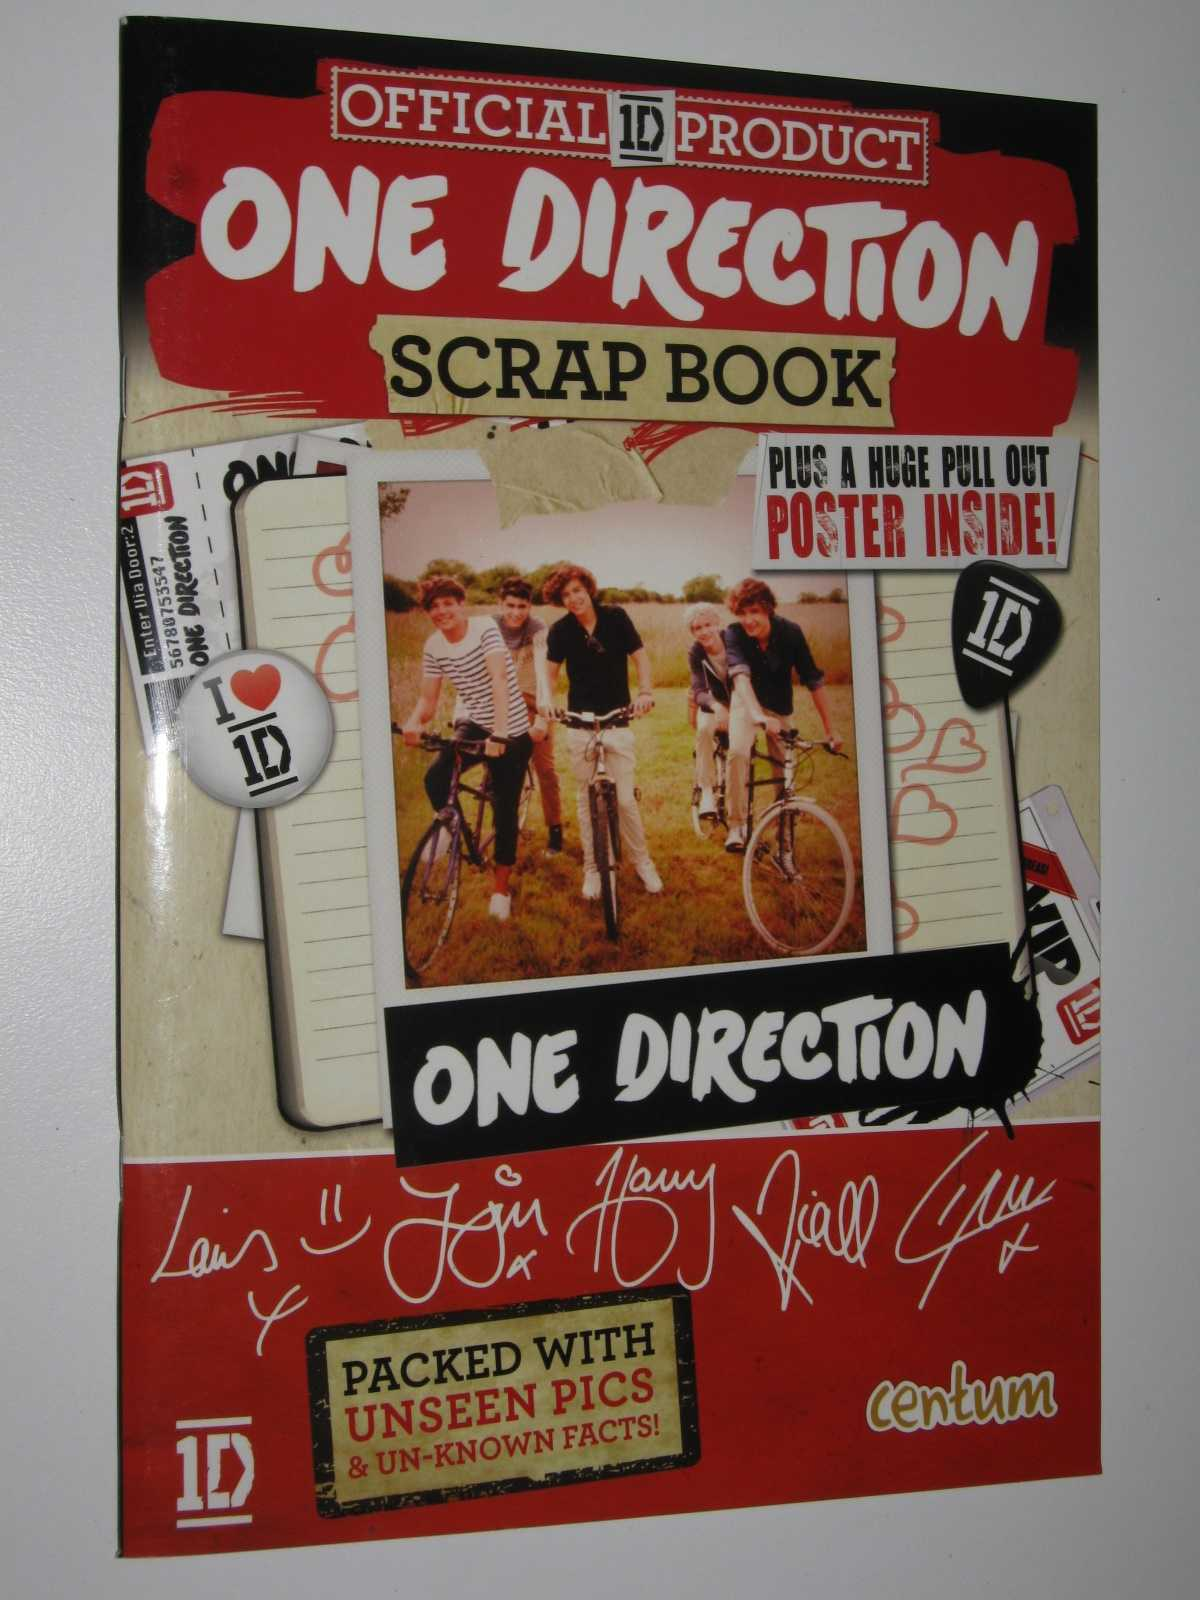 One Direction Scrap Book, Author Not Stated